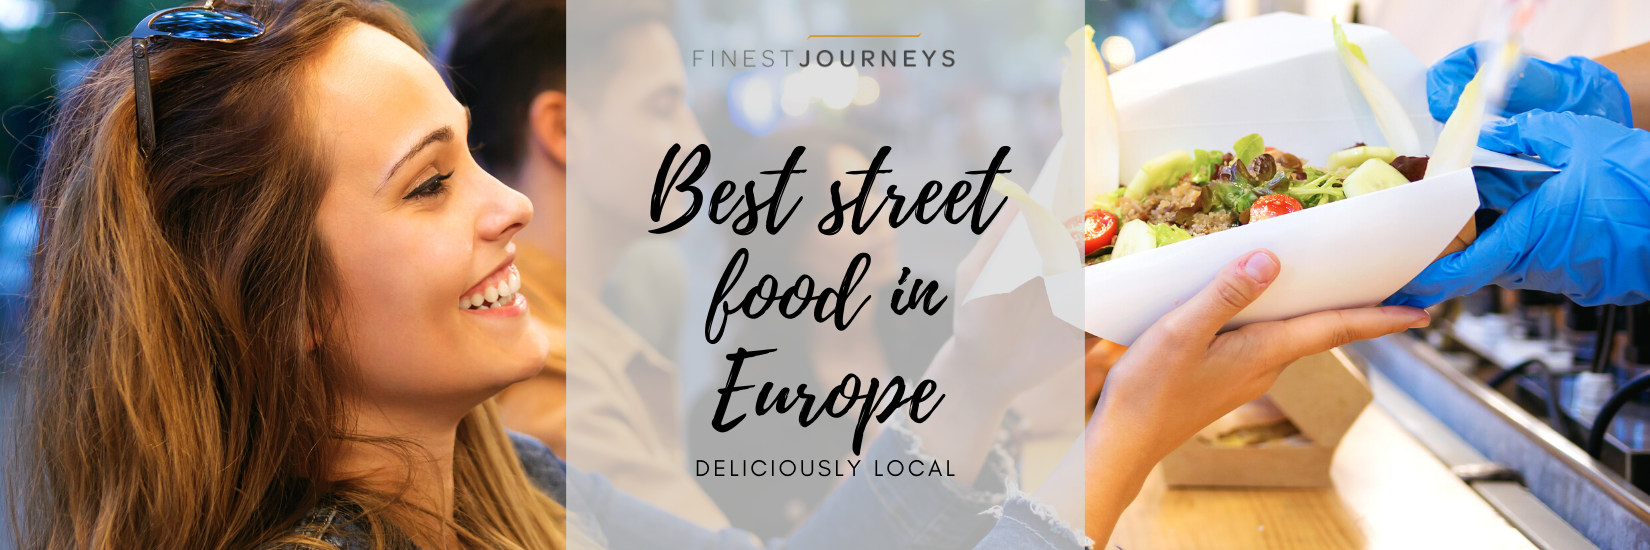 IMG : Best street food in Europe: Deliciously local